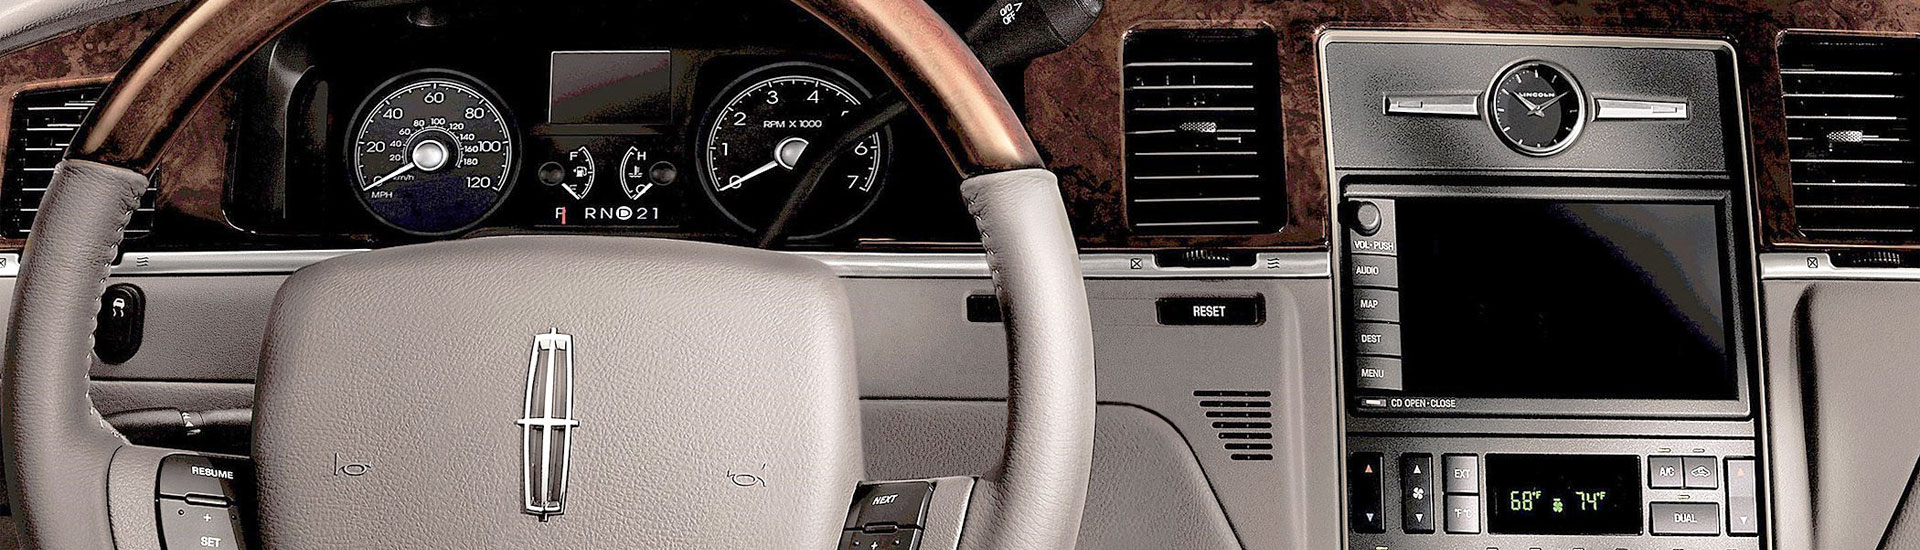 Lincoln town car dash kits custom lincoln town car dash kit lincoln town car custom dash kits sciox Image collections